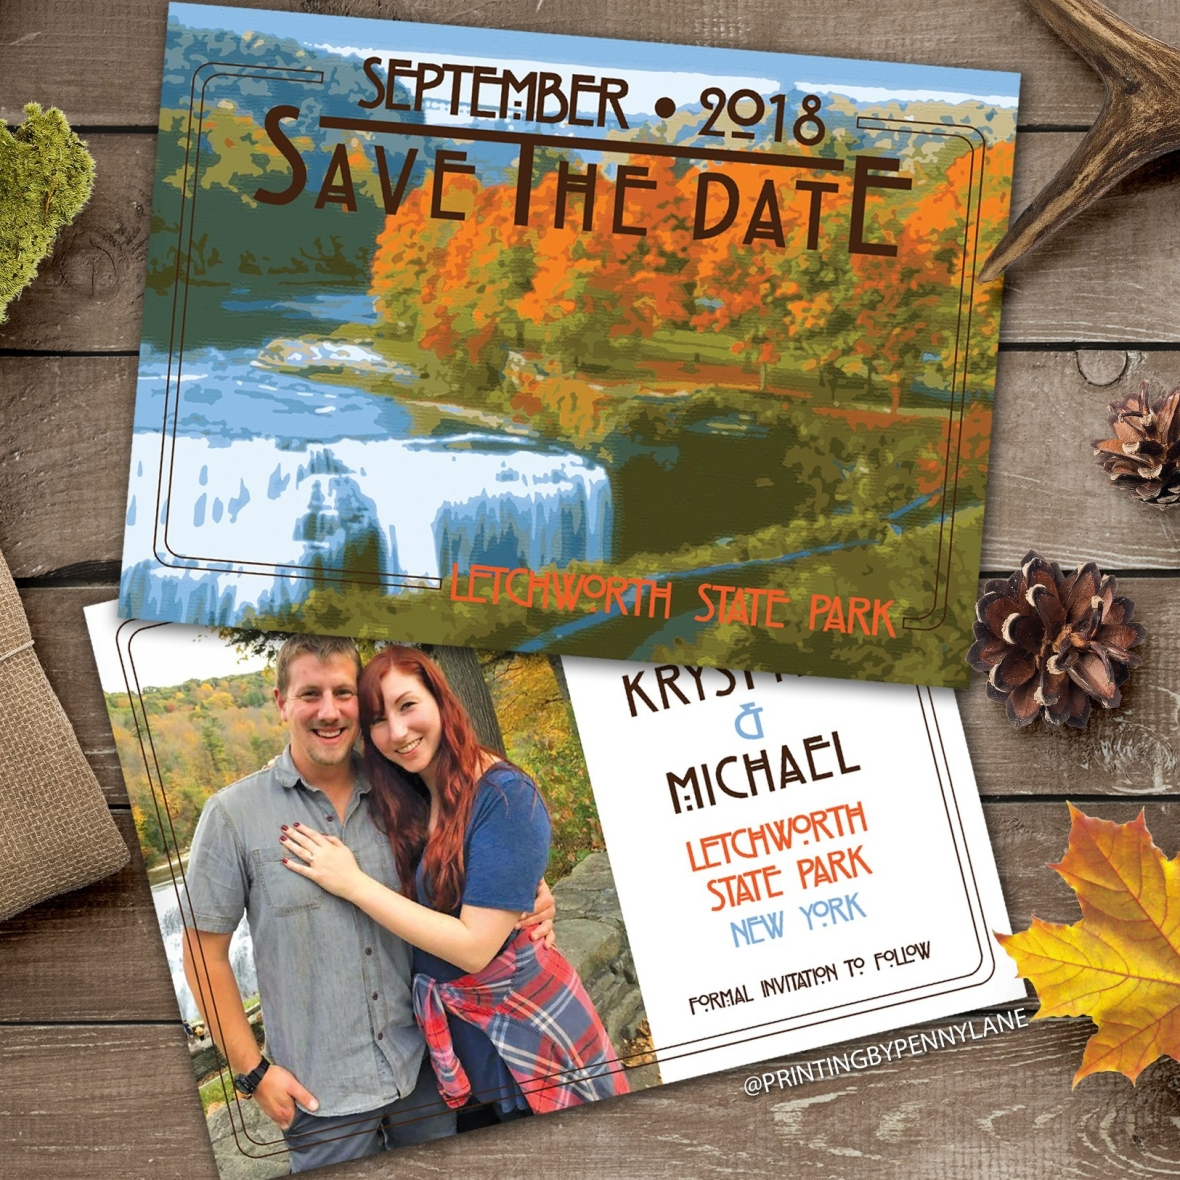 Outdoorsy Letchworth Park Save the Date Autumn